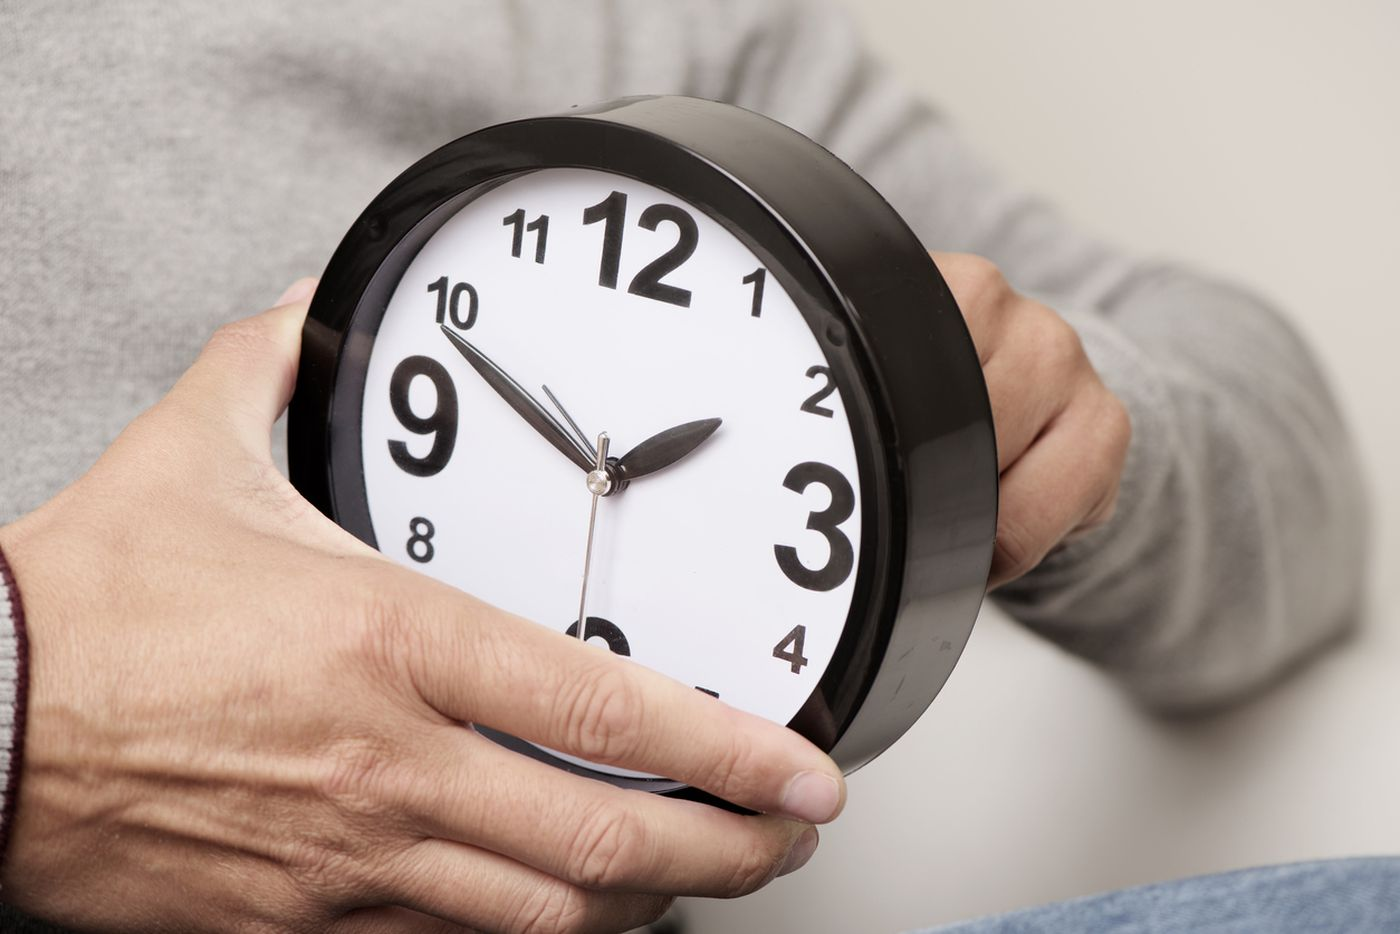 It's time to set clocks back for daylight savings, but what's the point?